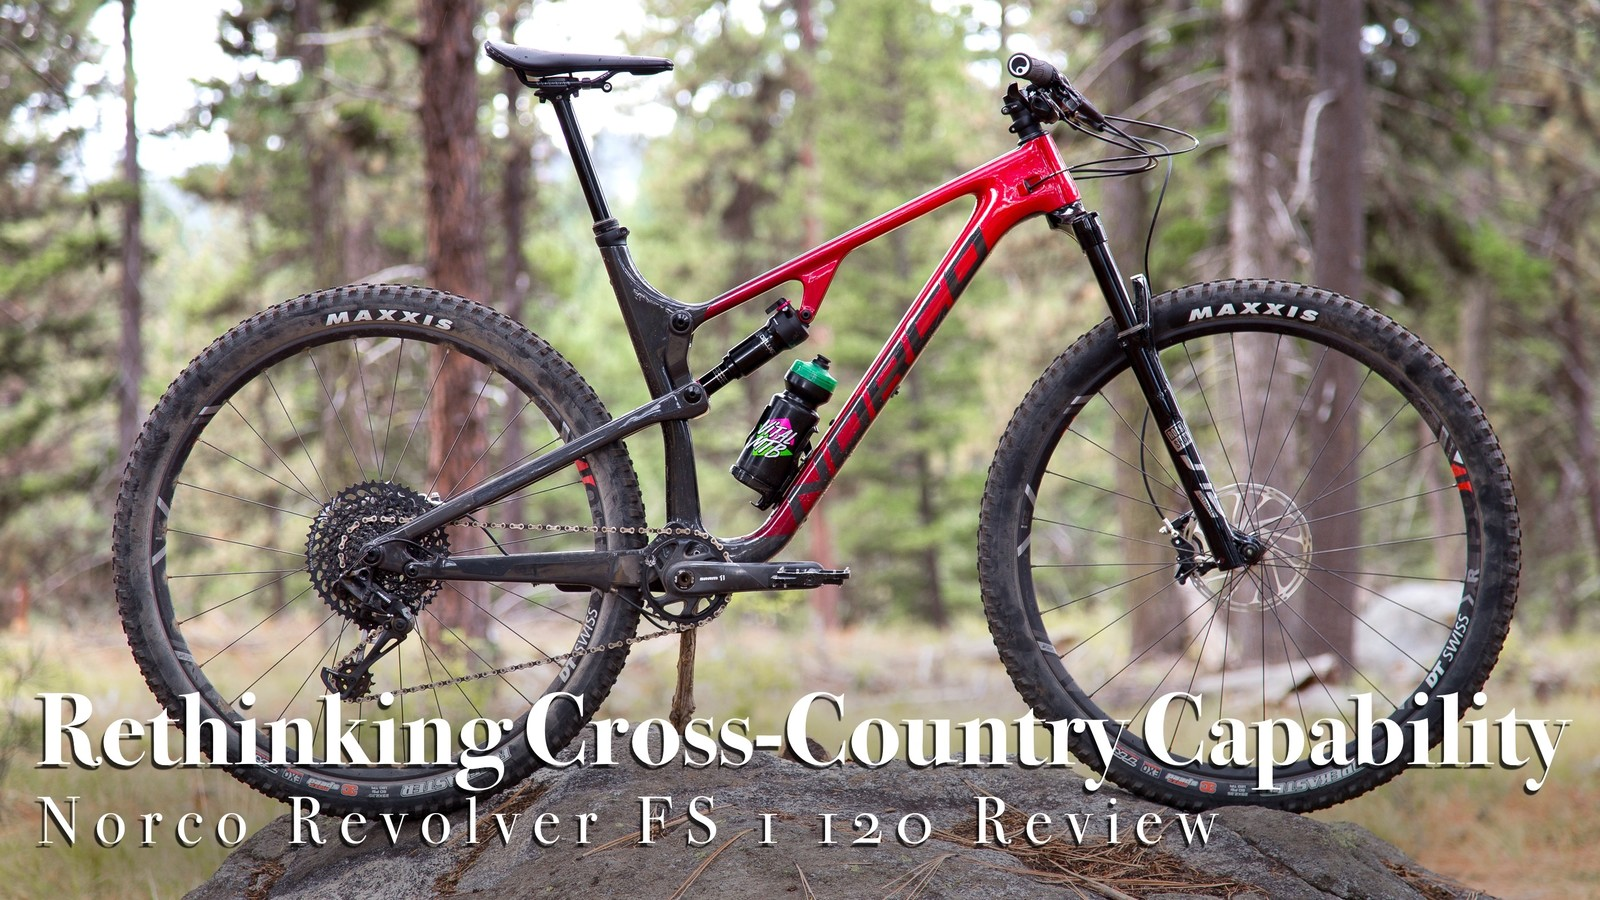 Rethinking Cross-Country Capability - Norco Revolver FS 1 120 Bike Review